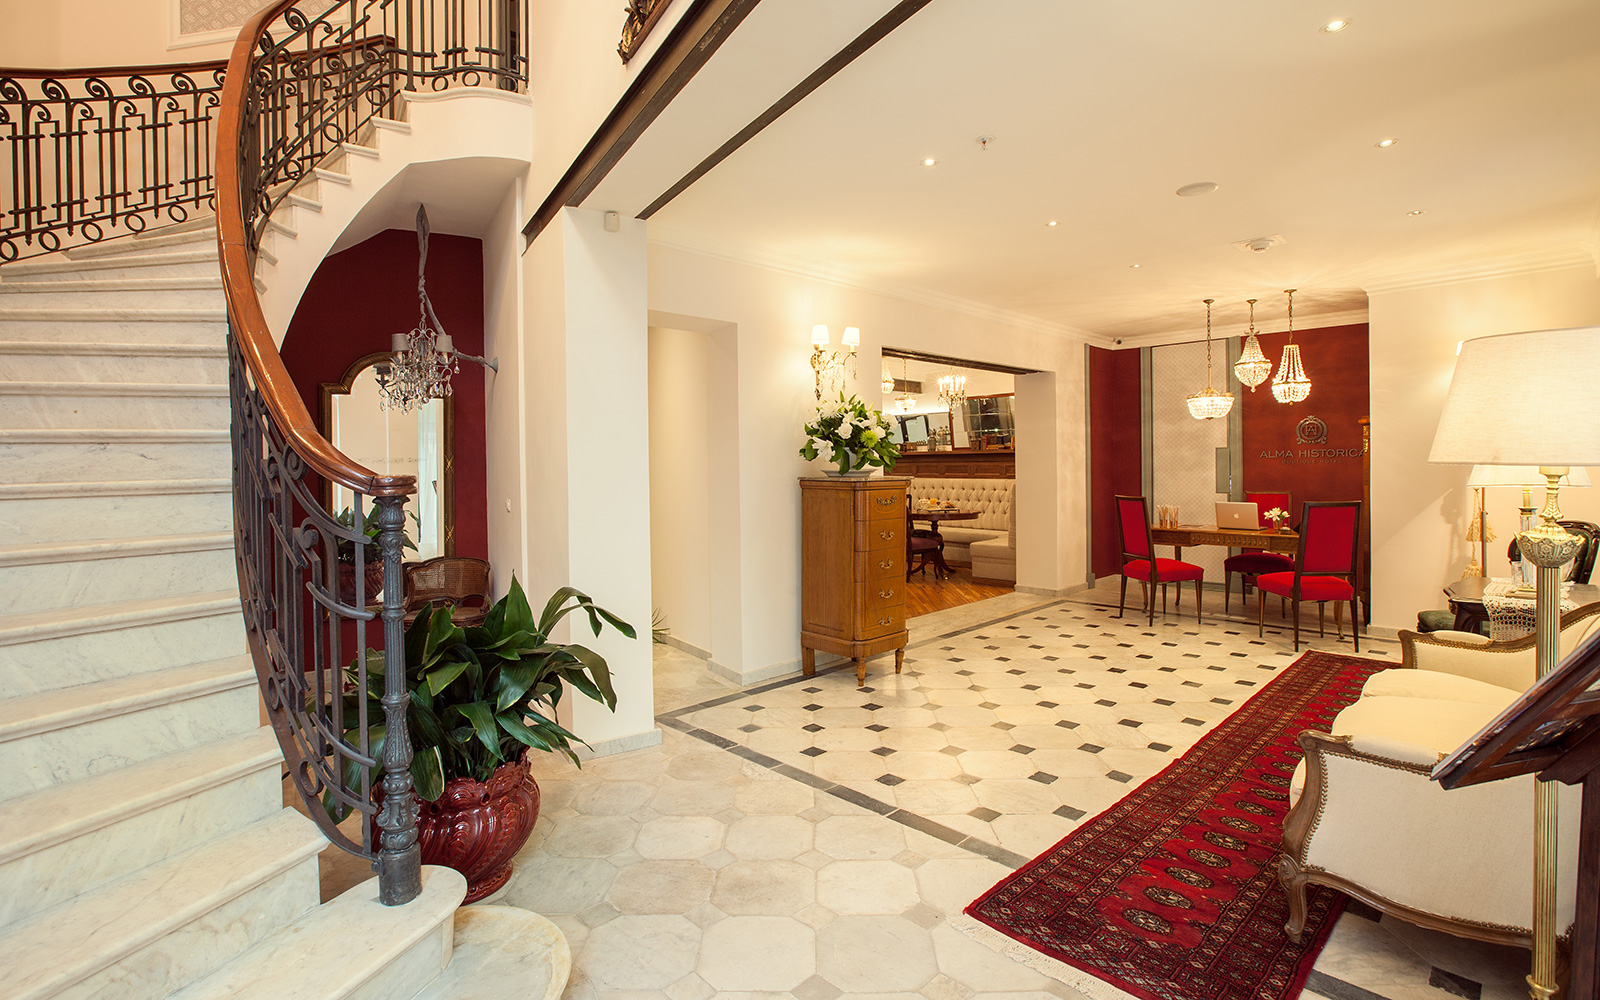 Alma Historica Boutique Hotel in Montevideo